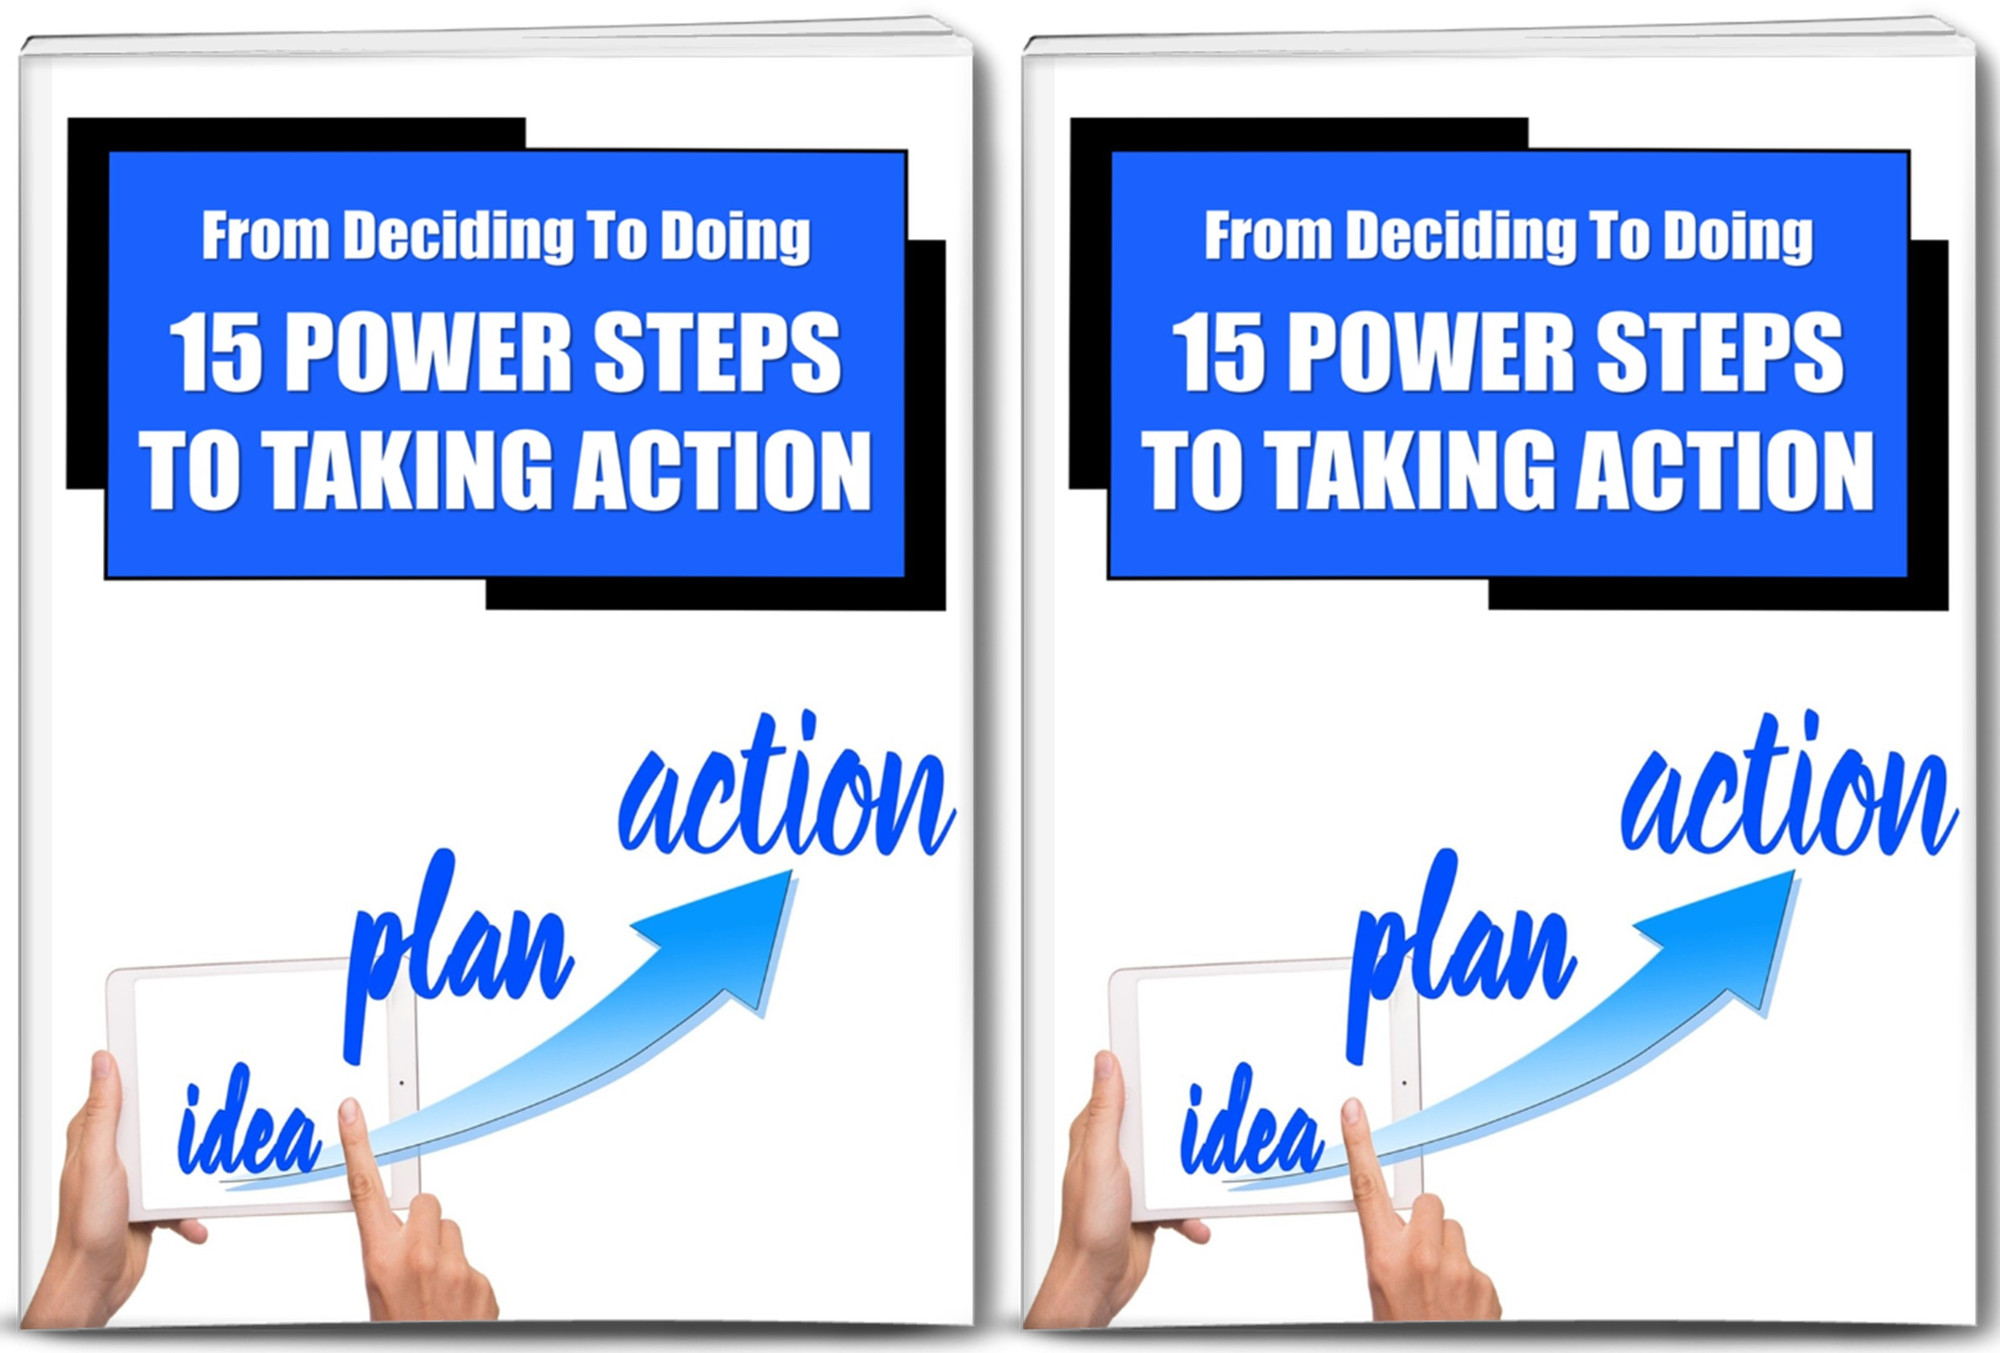 Move from decision to action - how to take action